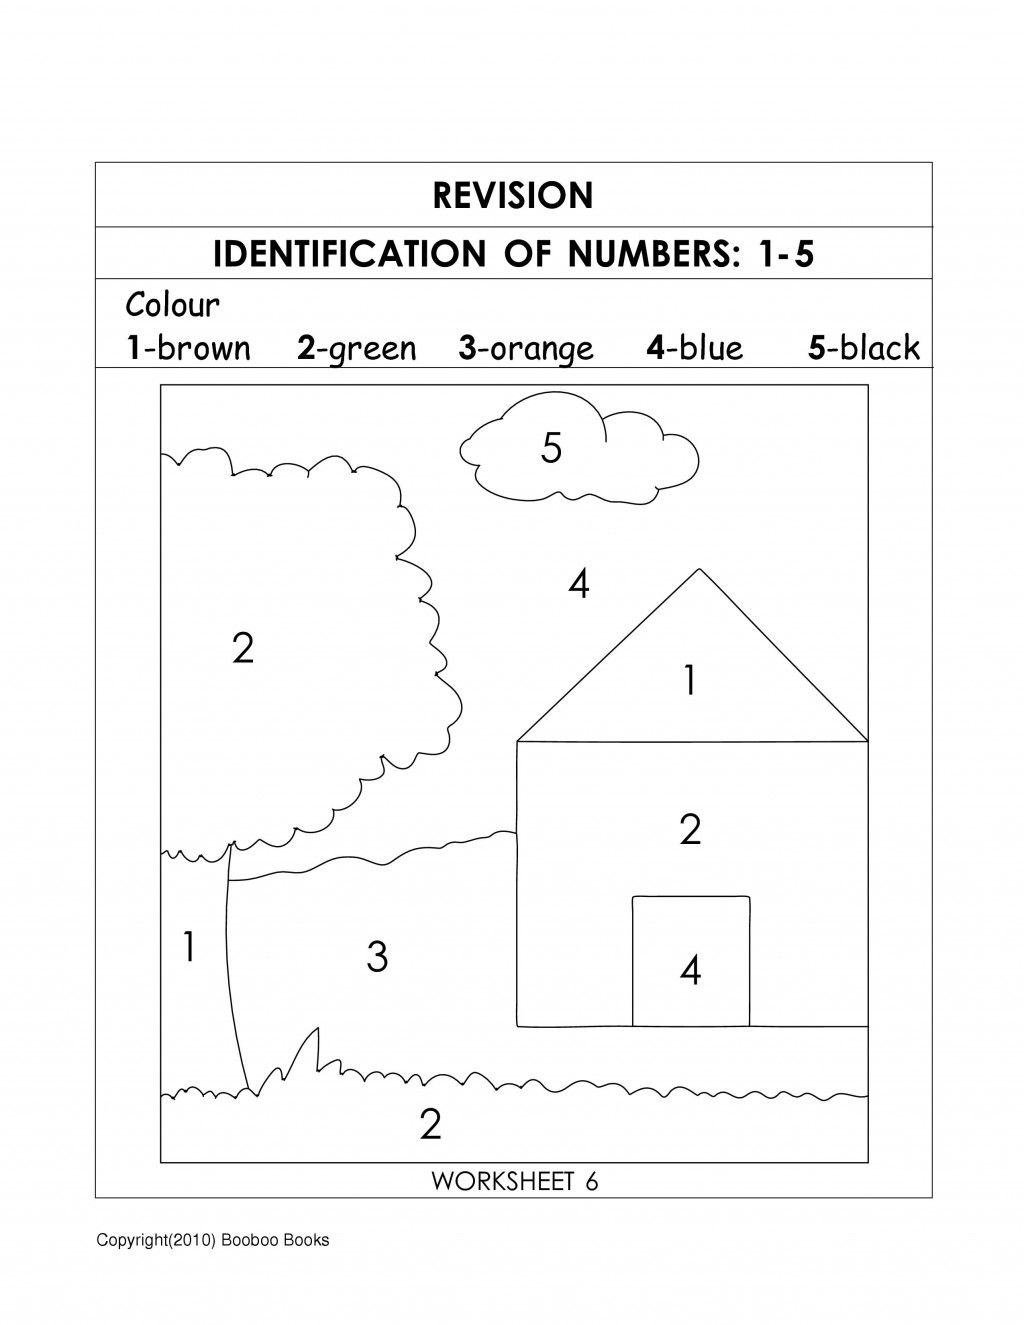 Colouring shapes activities - Number Recognition Worksheets Activities